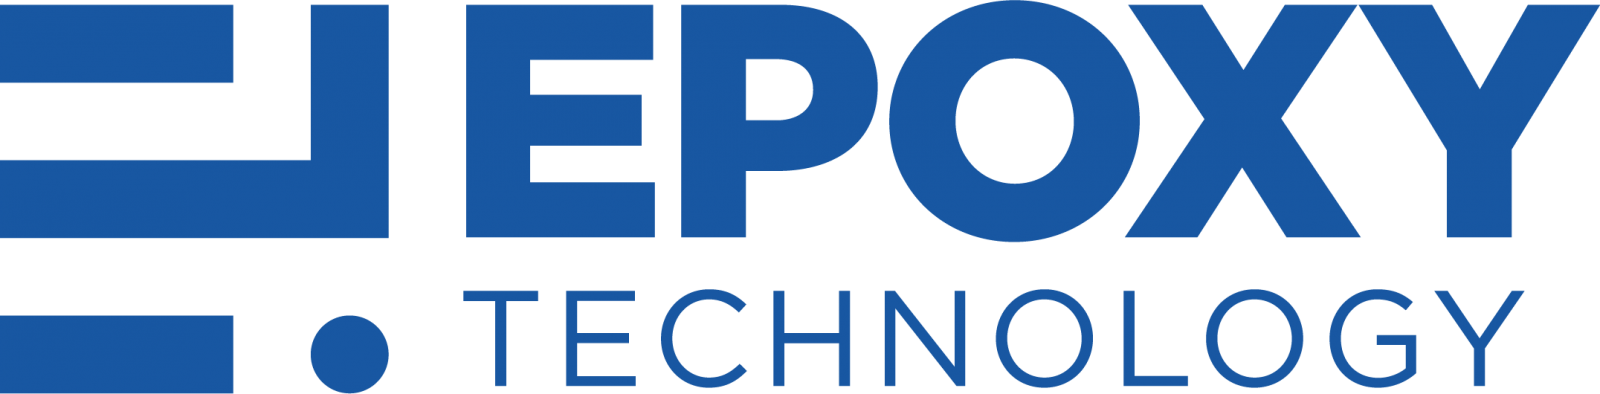 Epoxy Technology Inc. - Logo